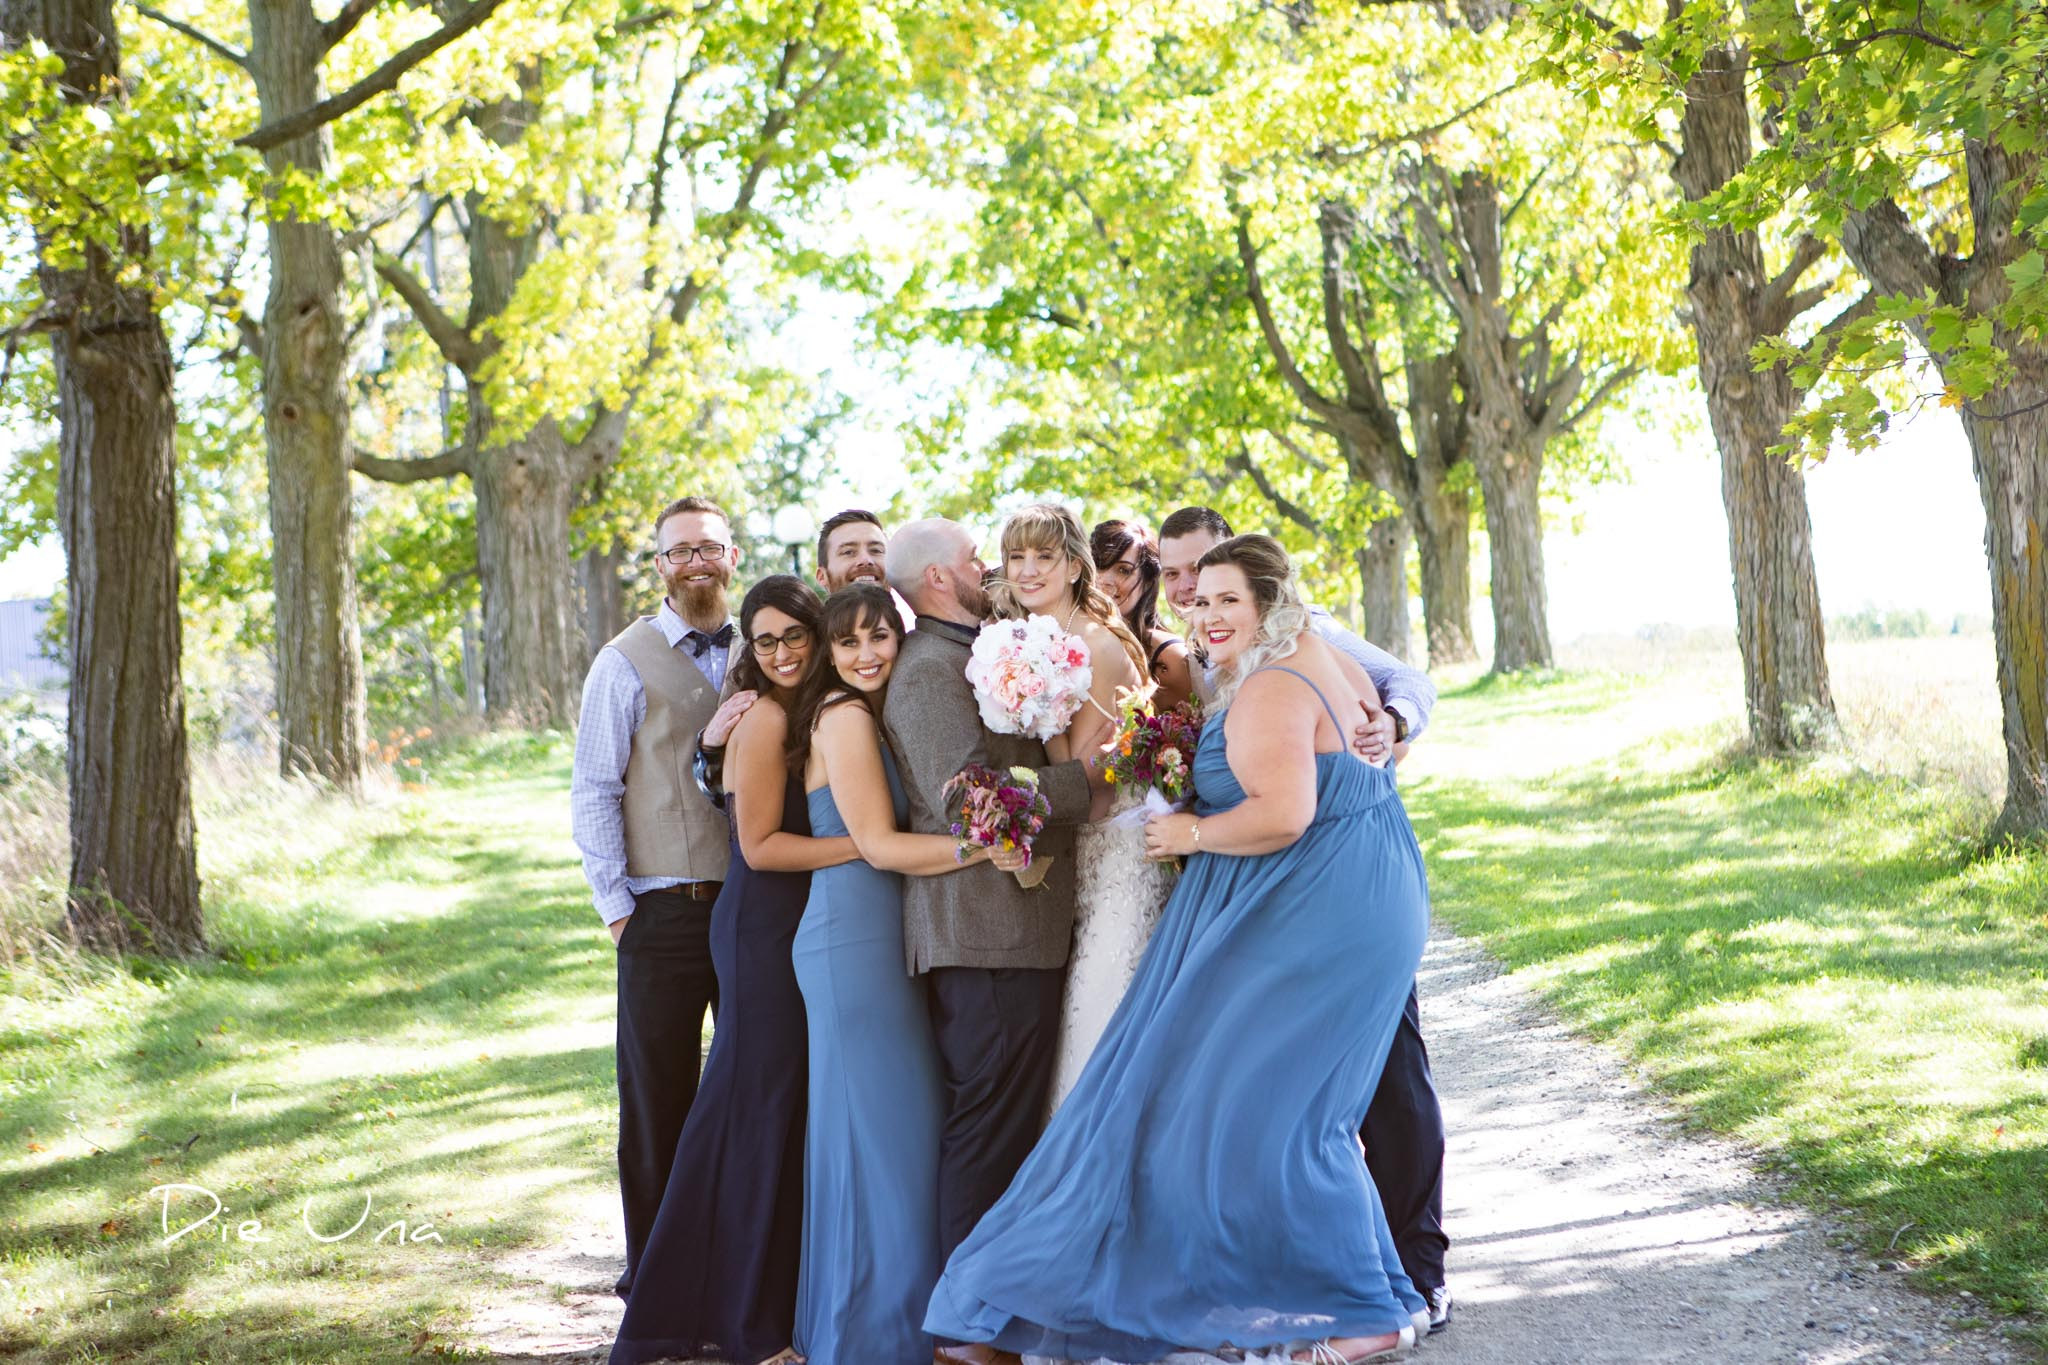 wedding party giving bride and groom a group hug on tree lined driveway.jpg